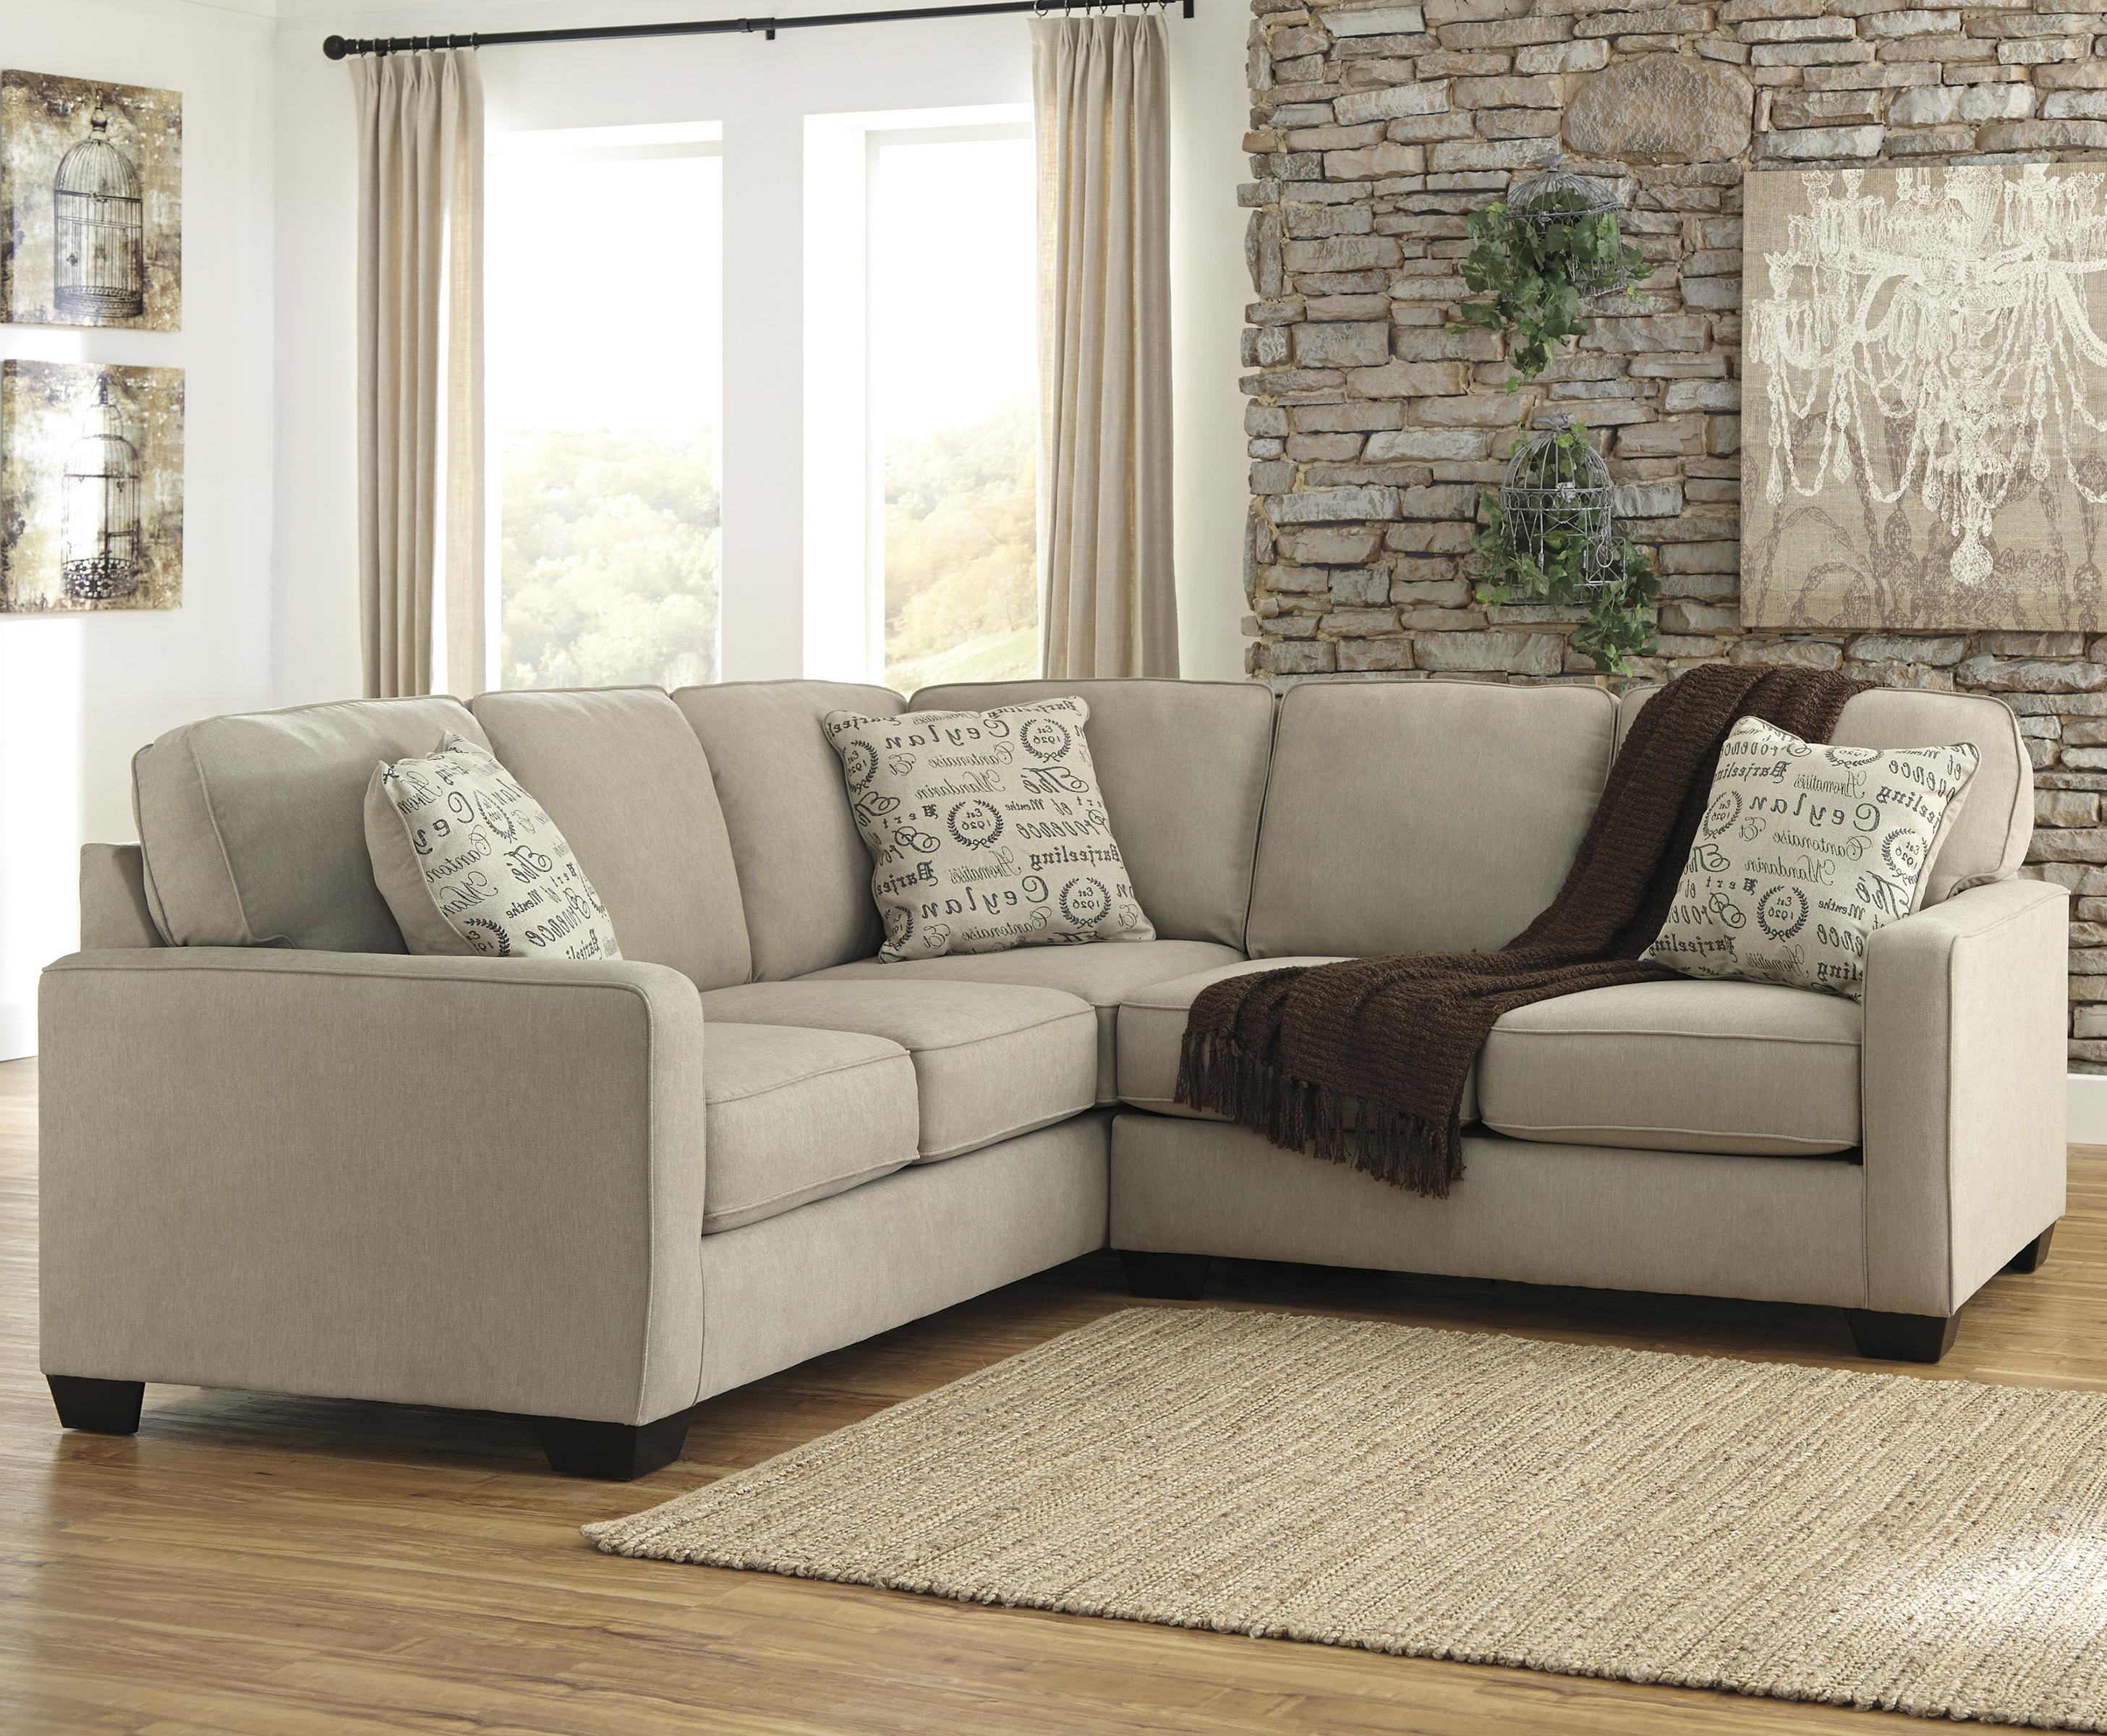 Alenya - Quartz 2-Piece Sectional with Right Loveseat by Signature Design at Fisher Home Furnishings